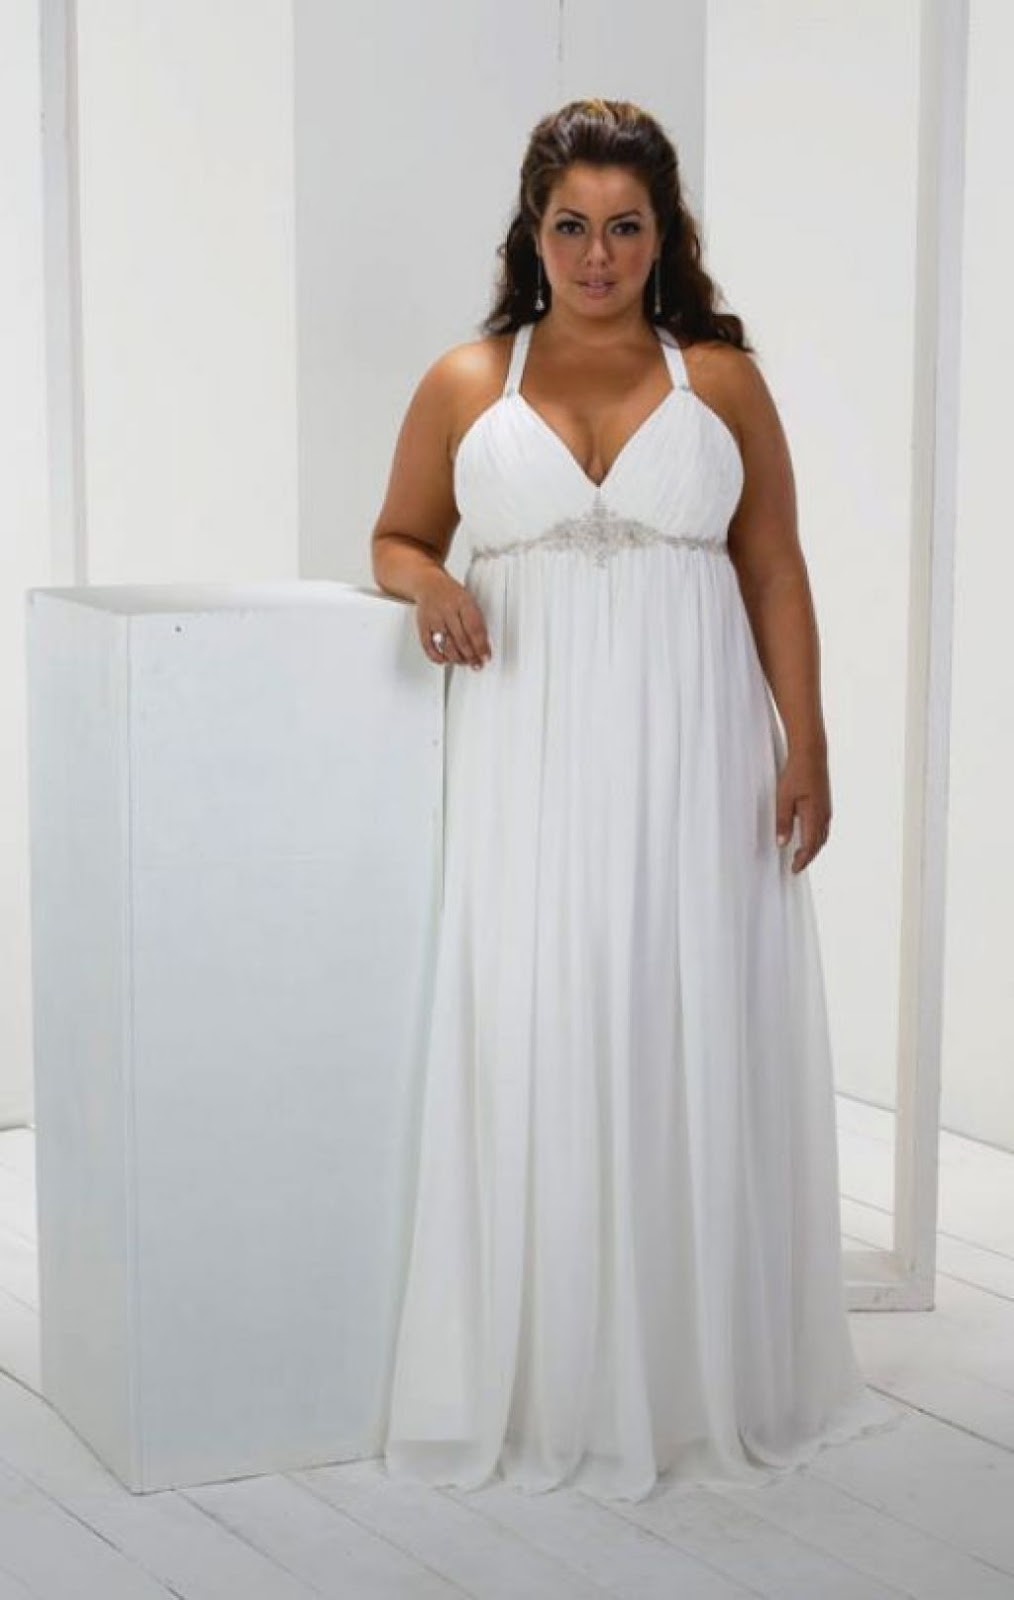 Plus size beach wedding dresses 2015 for Beach plus size wedding dresses